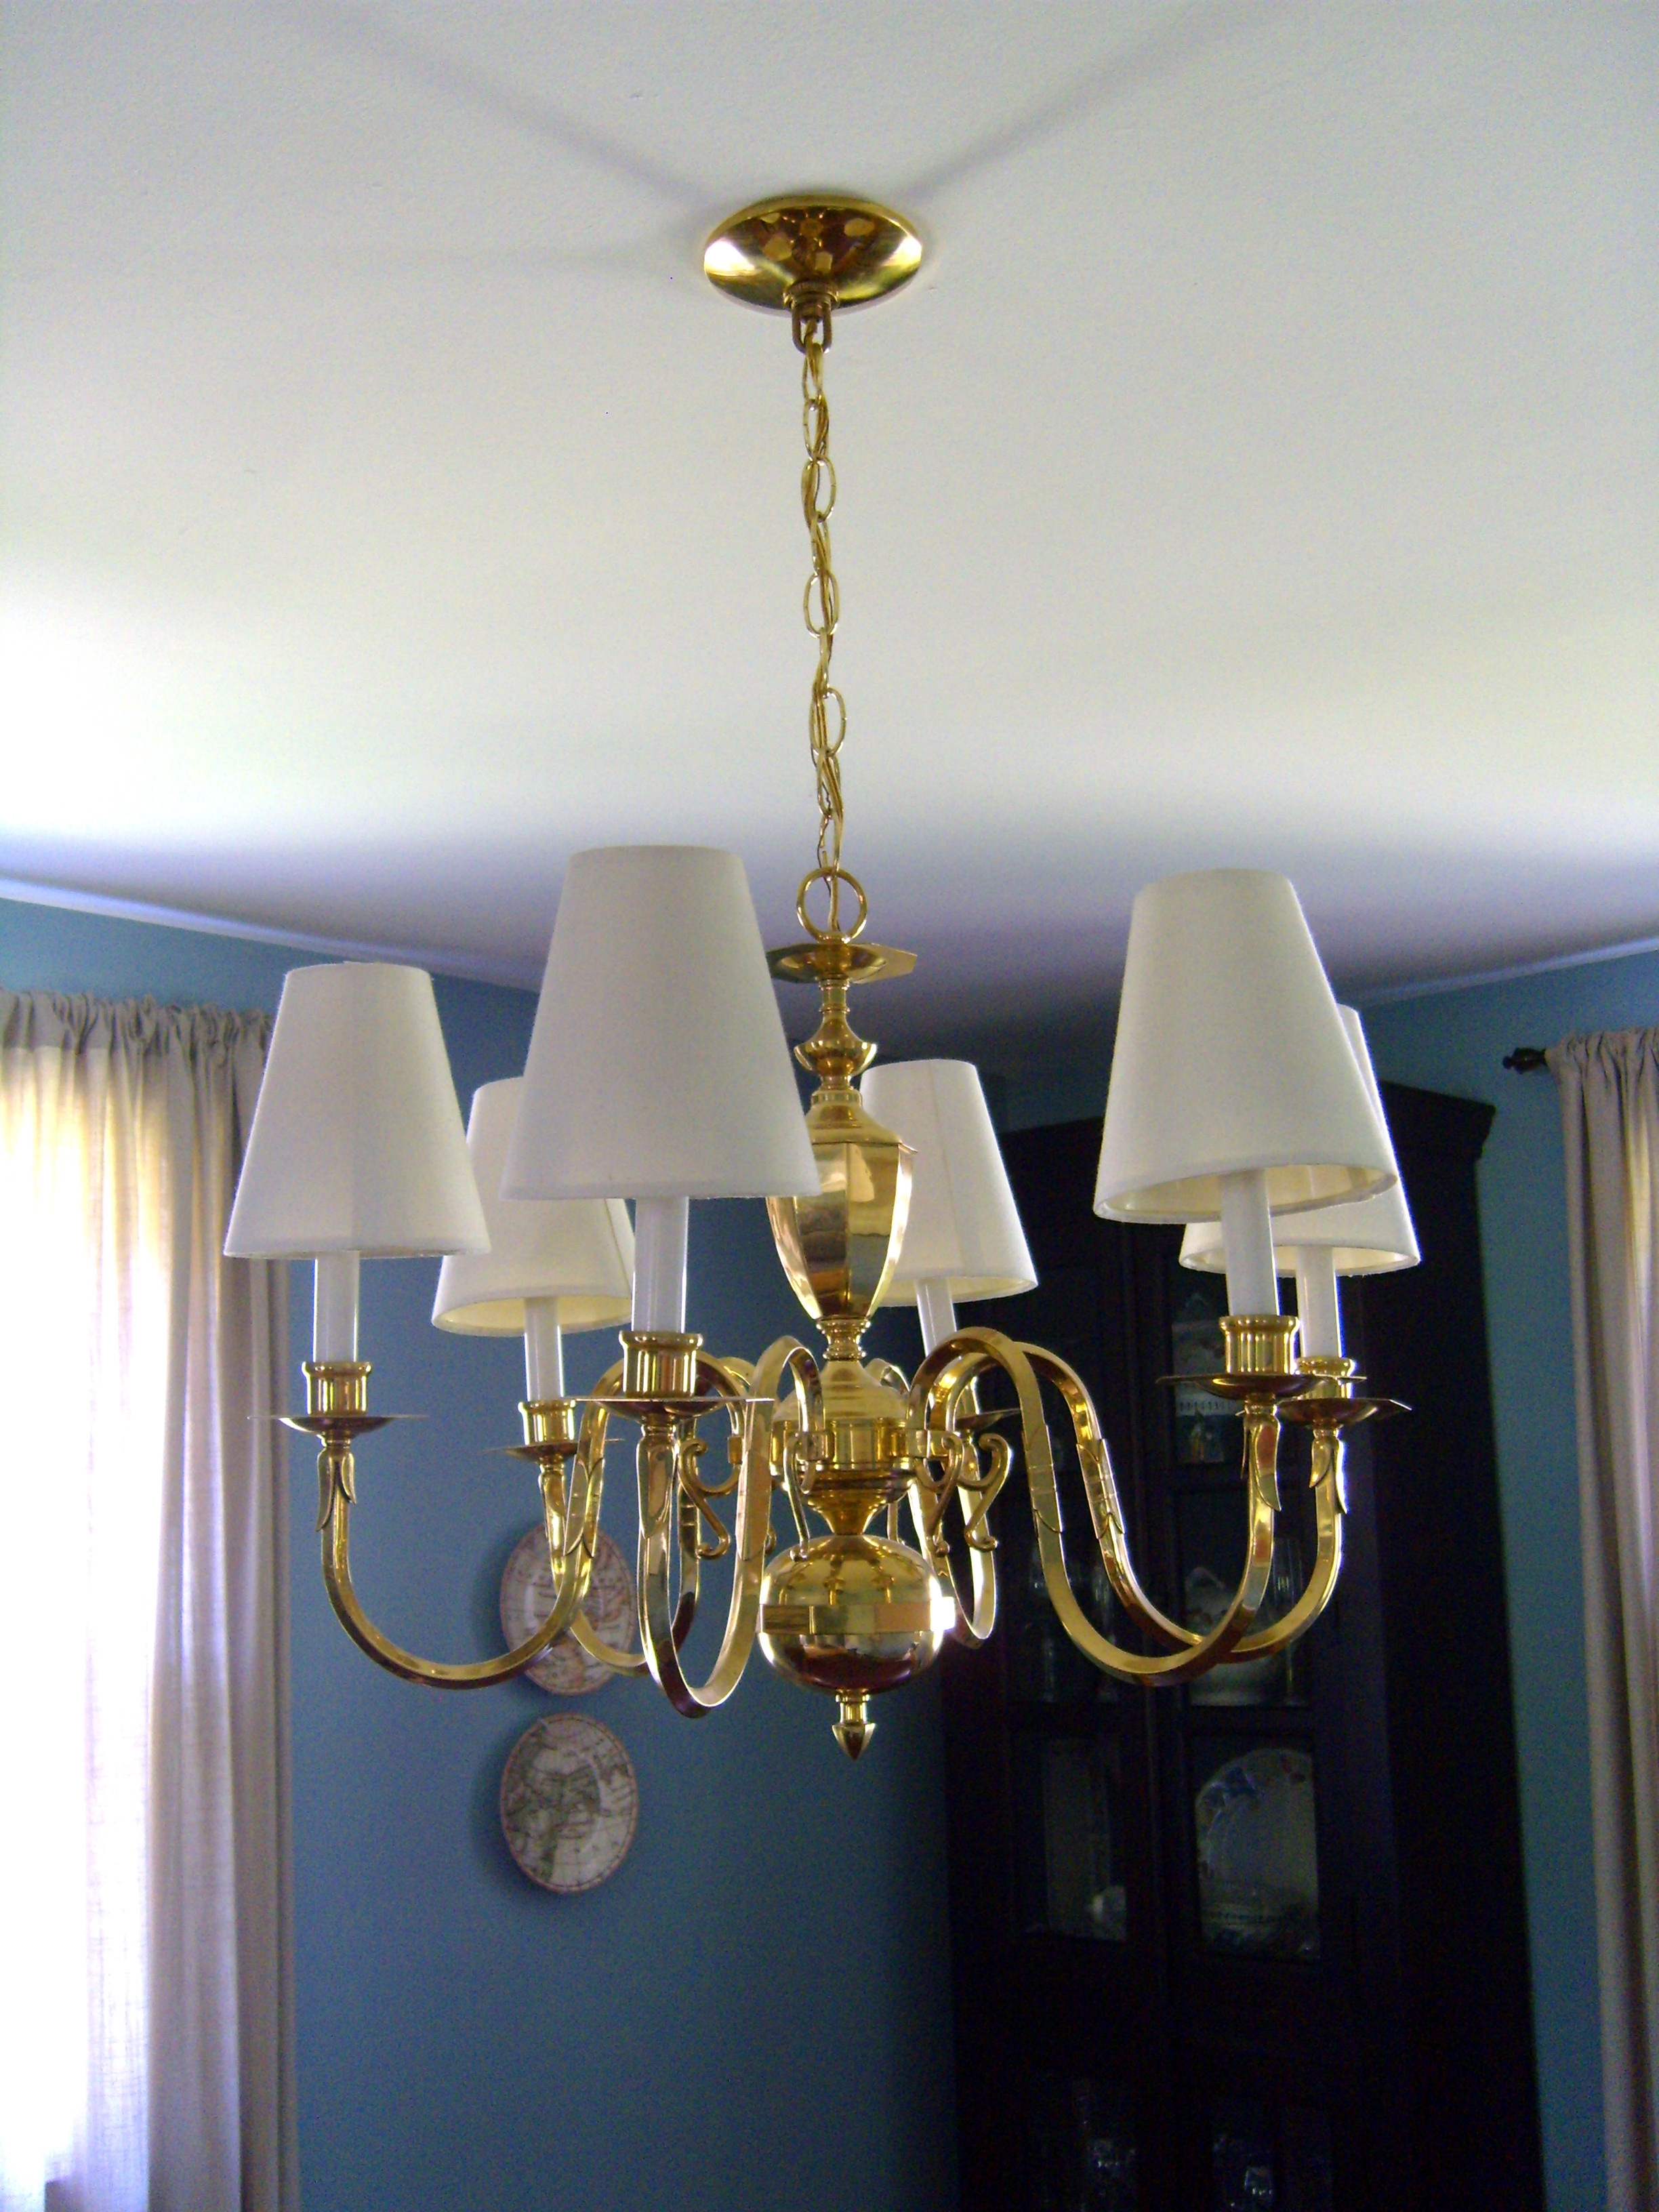 Chandelier Lampshades Pertaining To Most Current Furniture : Small Drum Lamp Shades Chandelier Saving Space Mini (View 3 of 15)